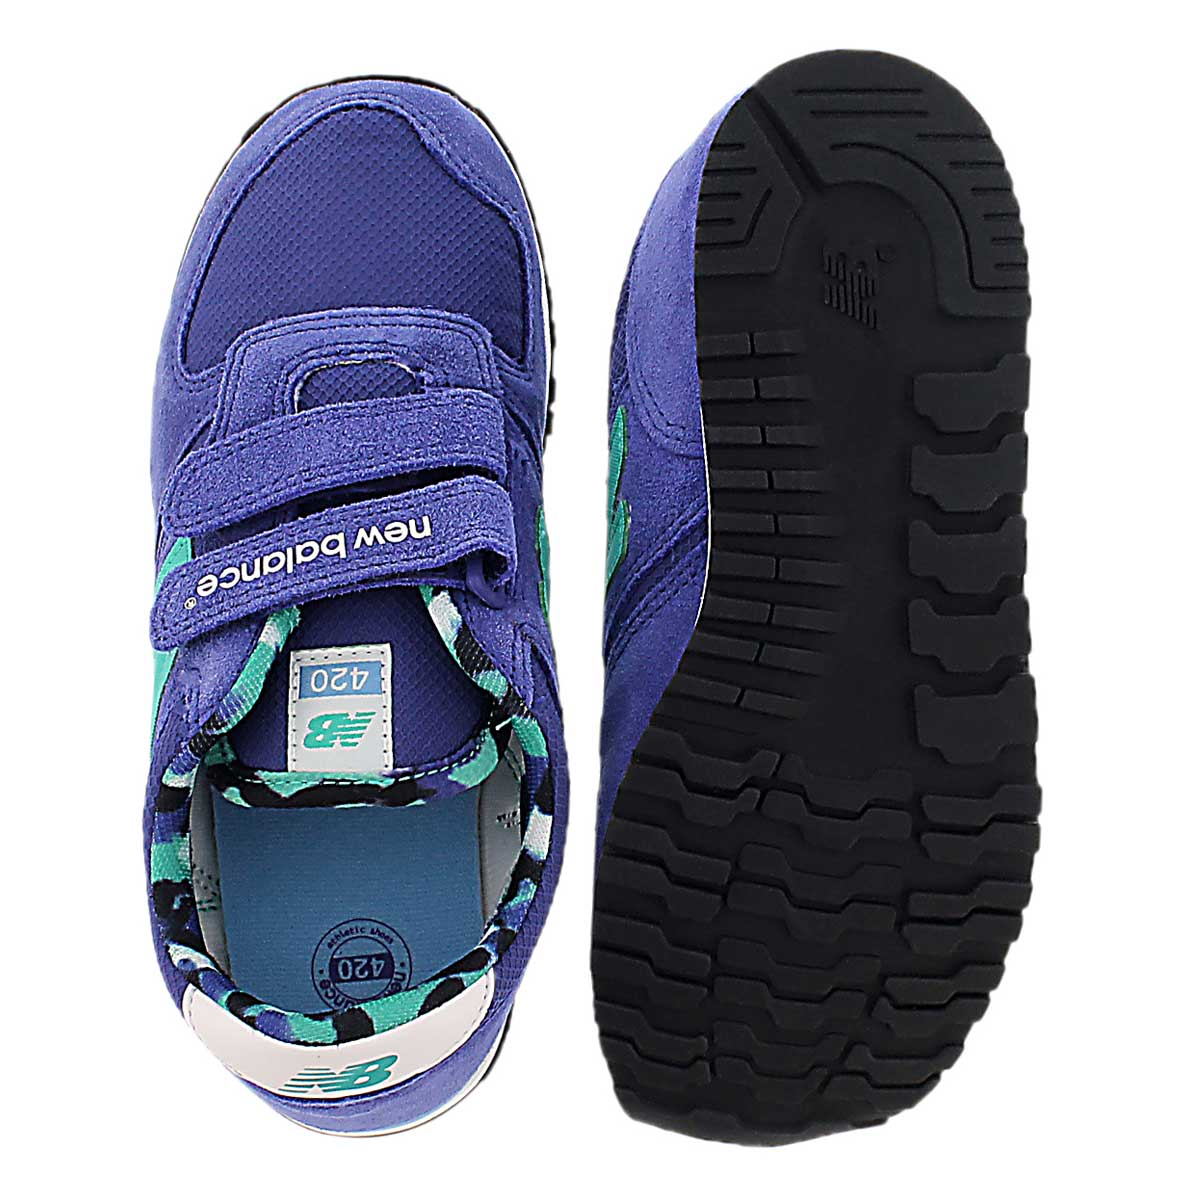 Grls 420 purple/teal hook & loop sneaker